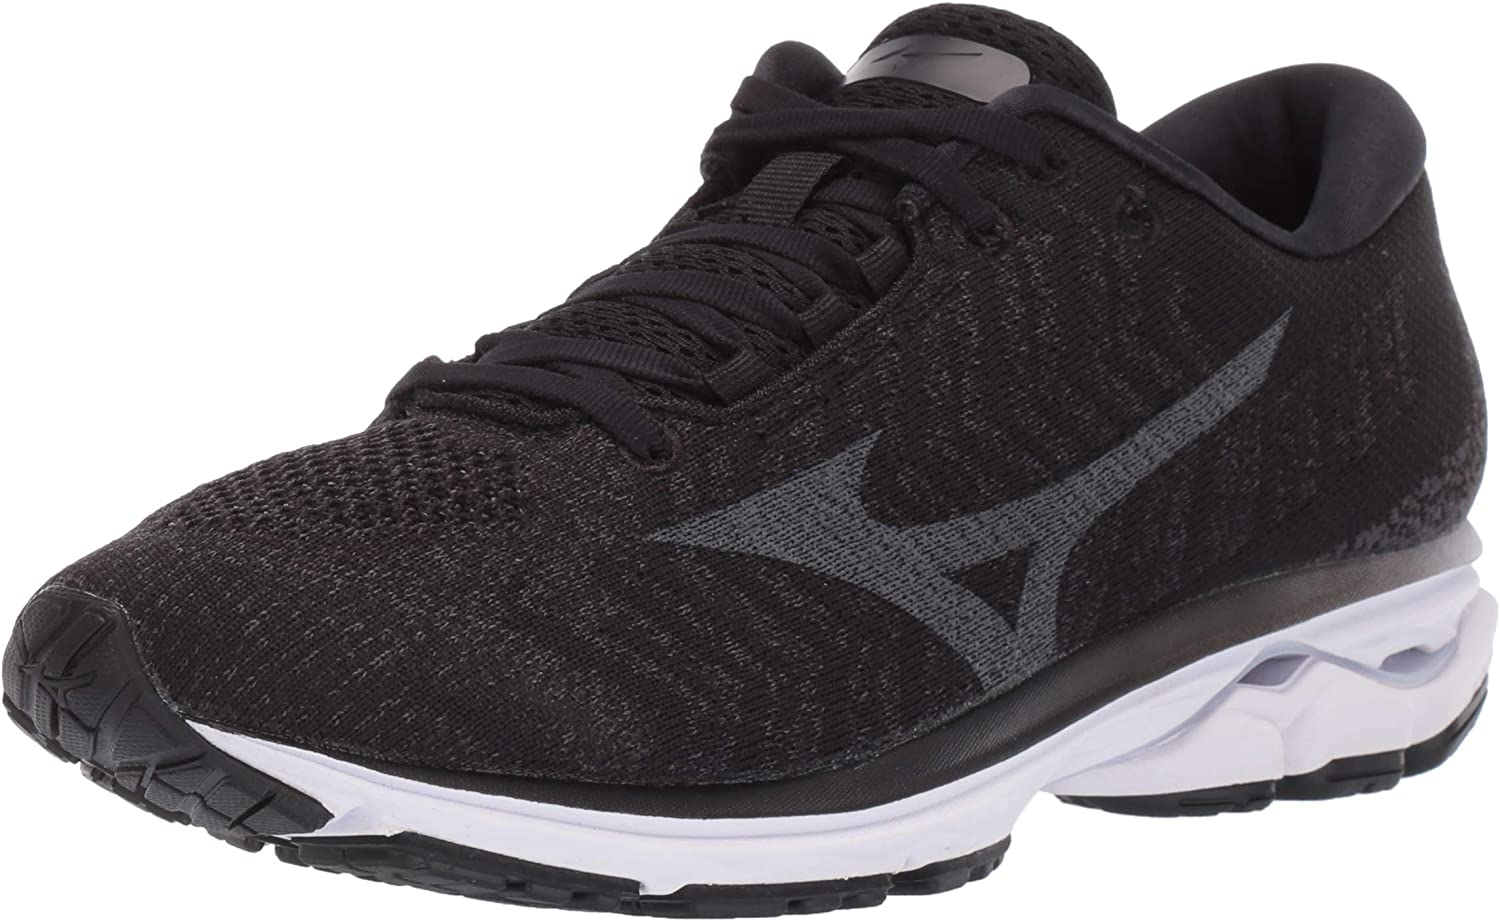 deals on mizuno running shoes quiz questions and answers